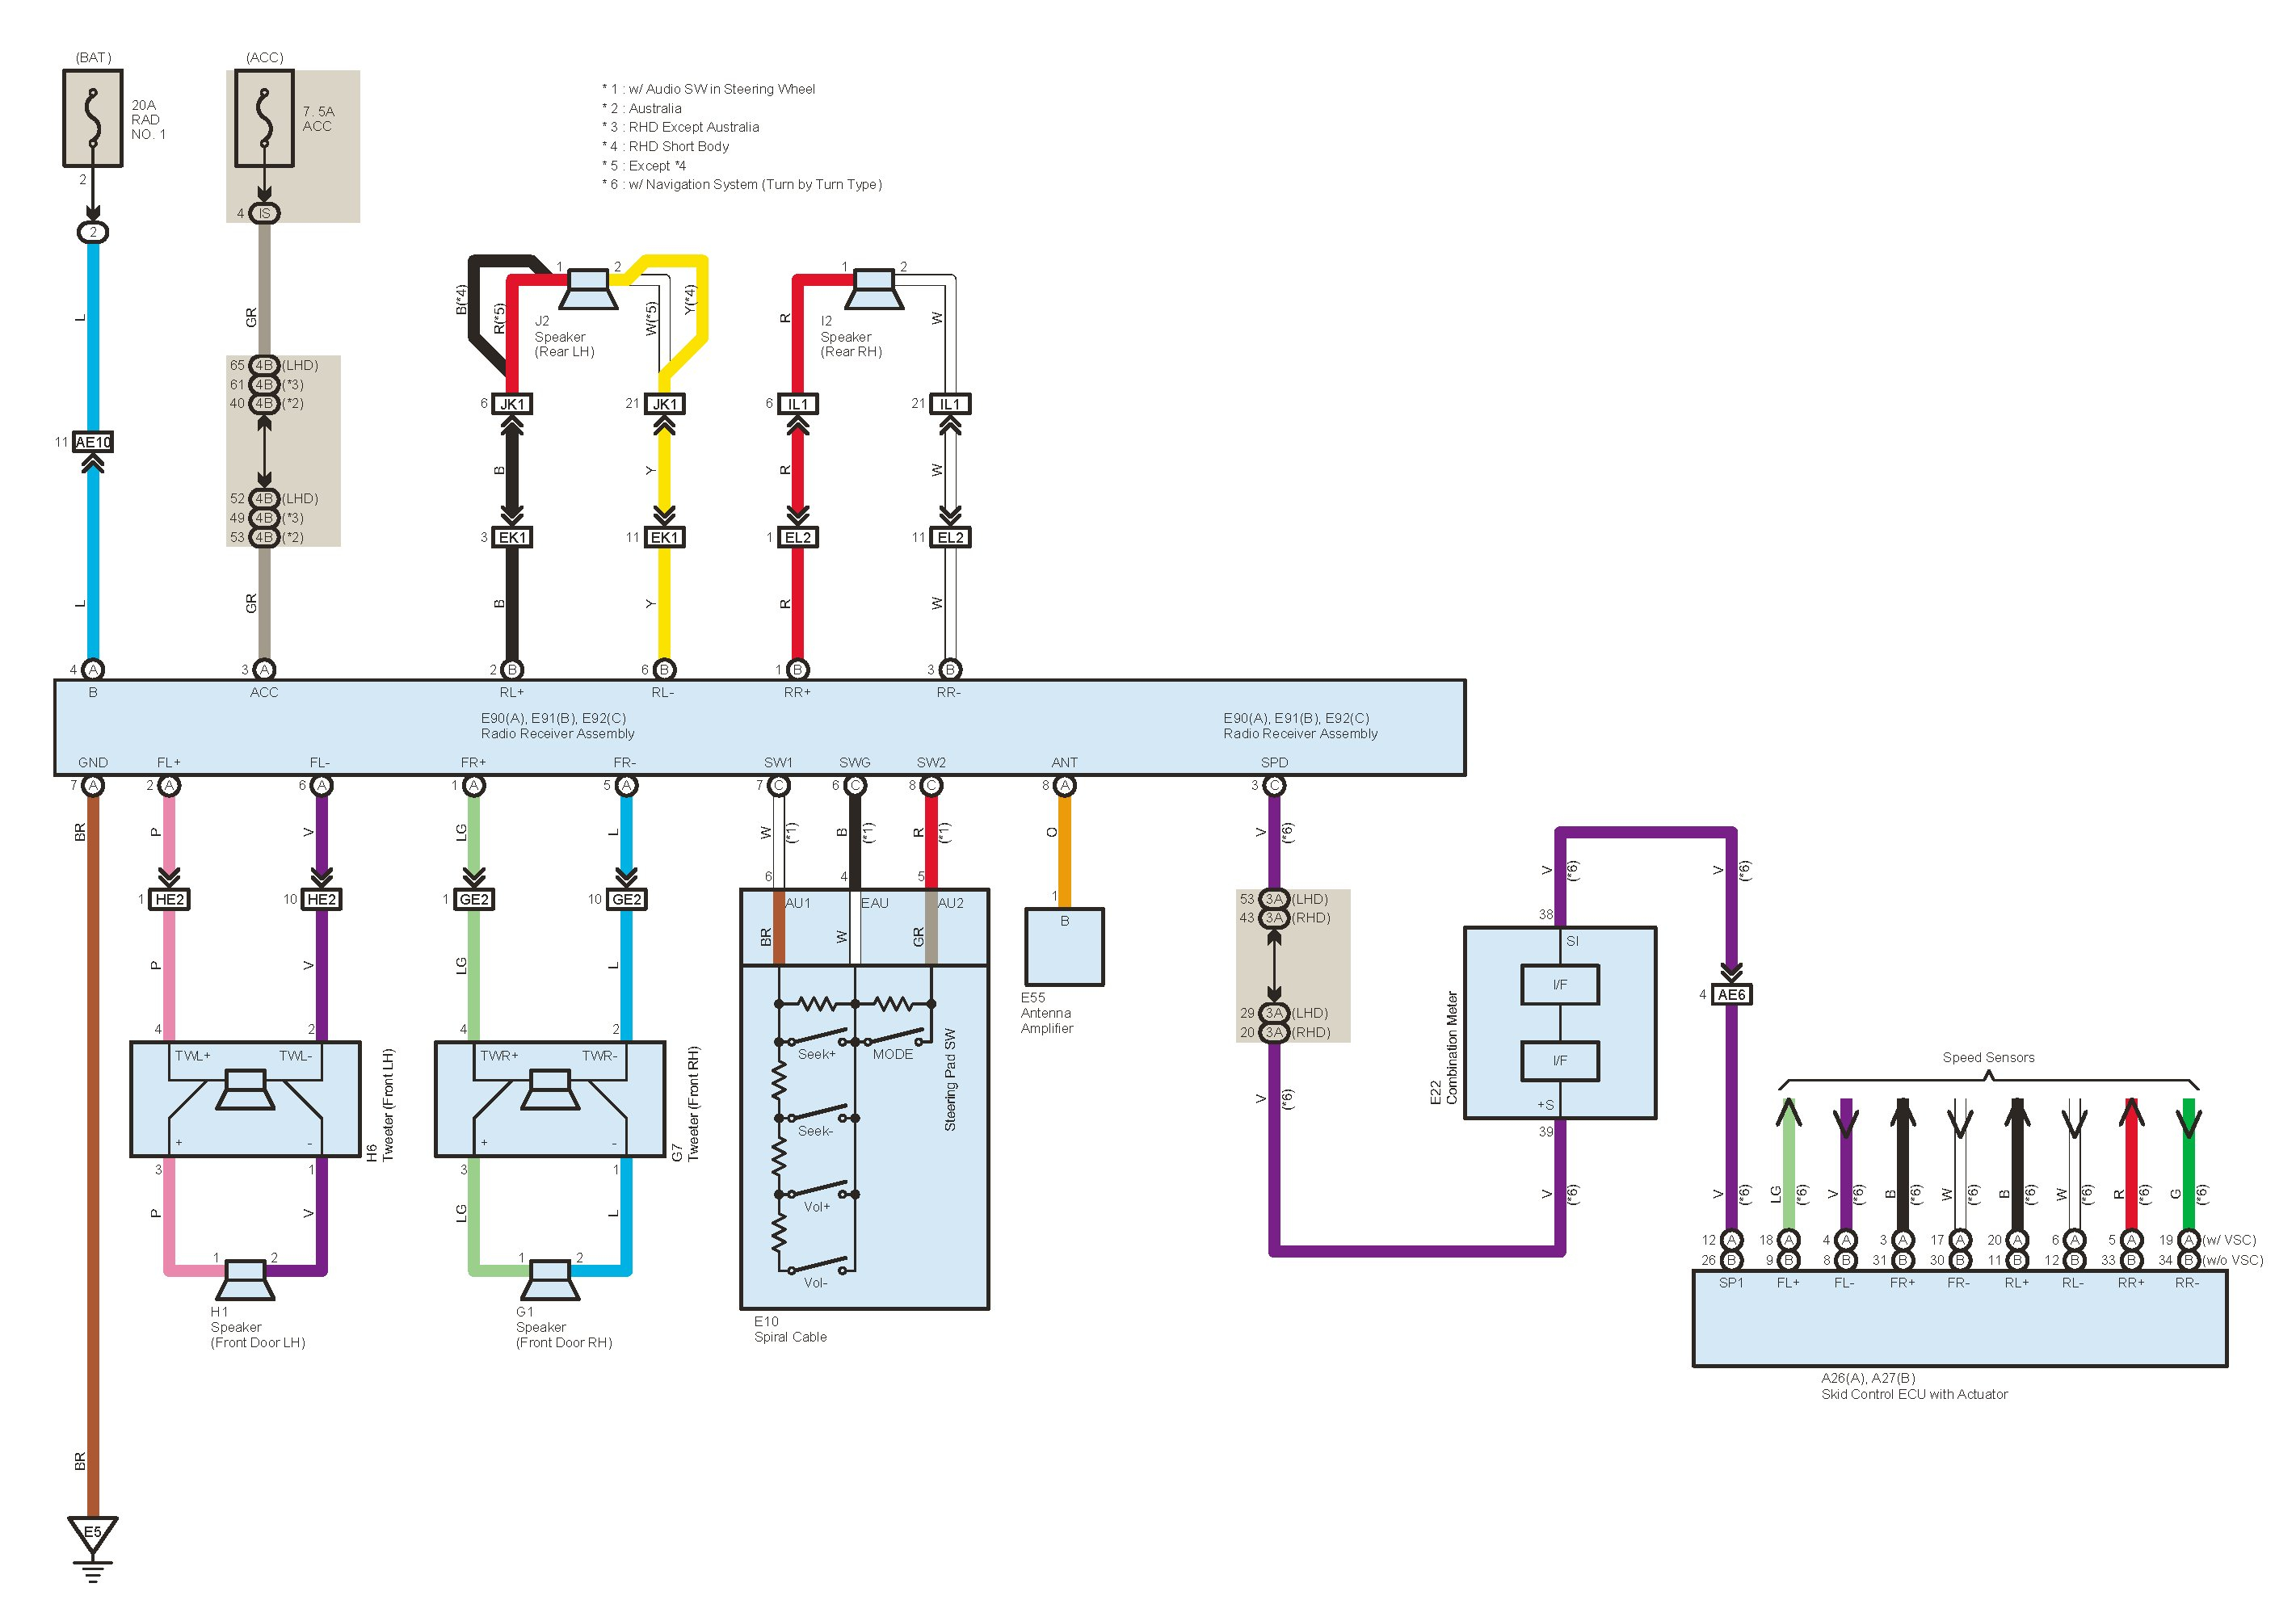 2007 Tundra Jbl Wiring Diagram 12 Lead Alternator Diagram Wiring Schematic Bosecar Wiringdol Jeanjaures37 Fr